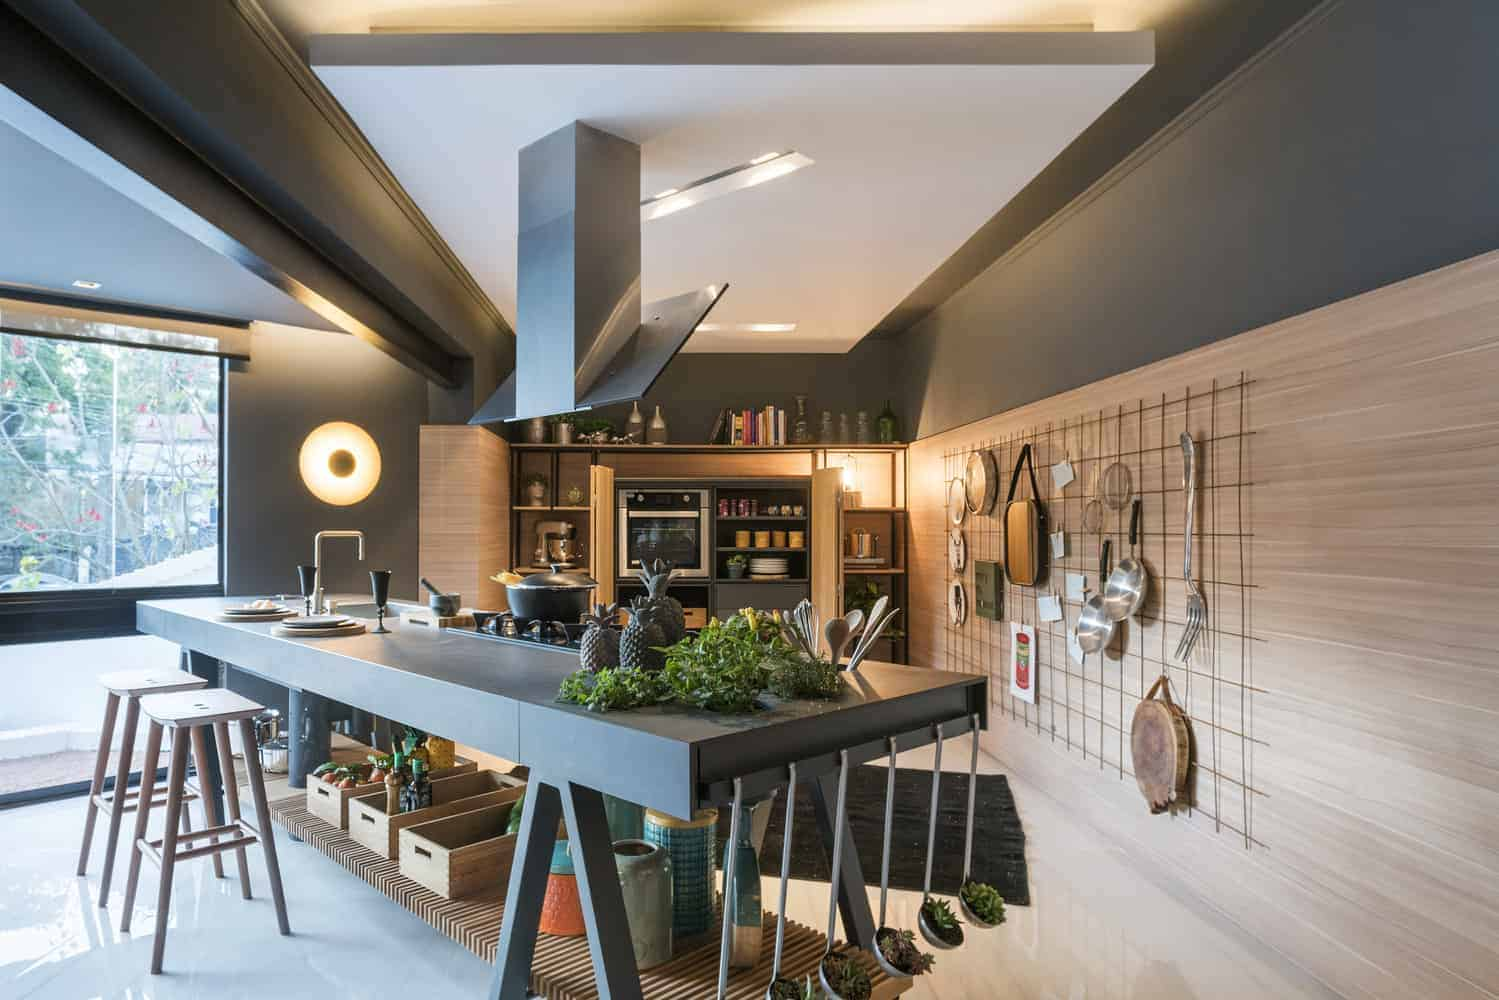 Example Of A Great Kitchen Without Cabinets And Counters With Plenty Of Storage And Workspace Home Stratosphere